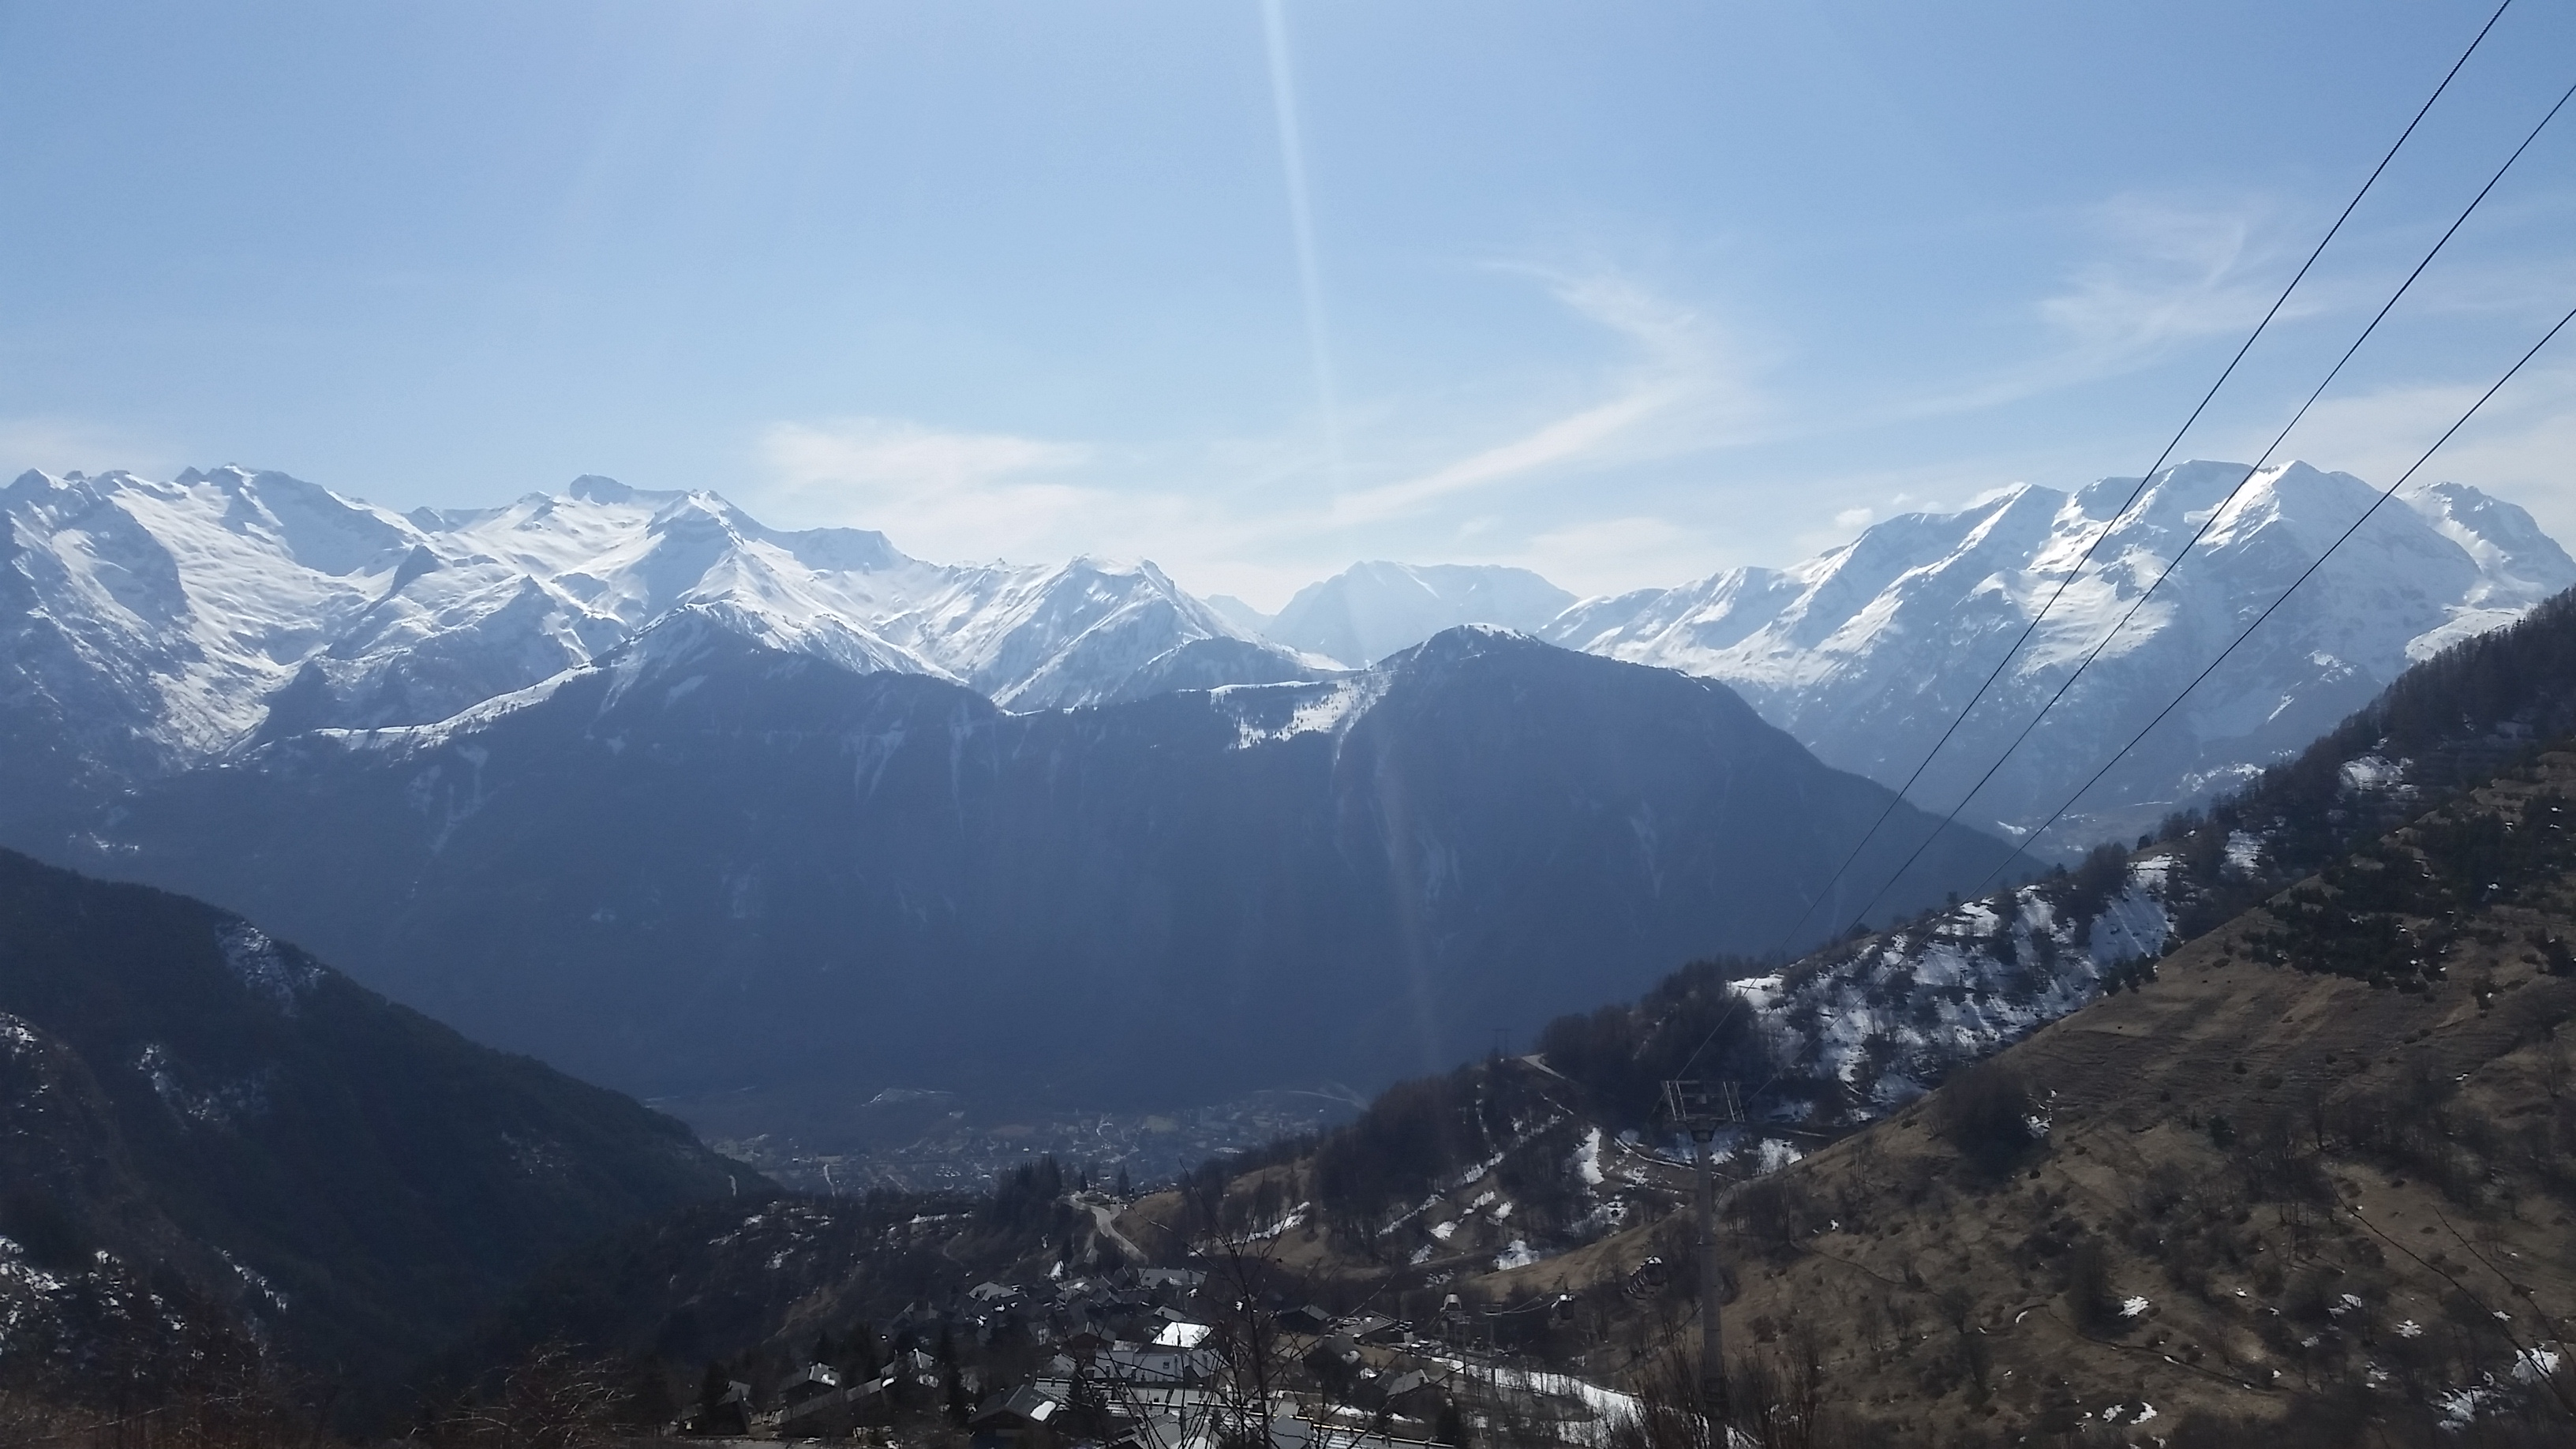 The view from the top of L'Alpe D'Huze